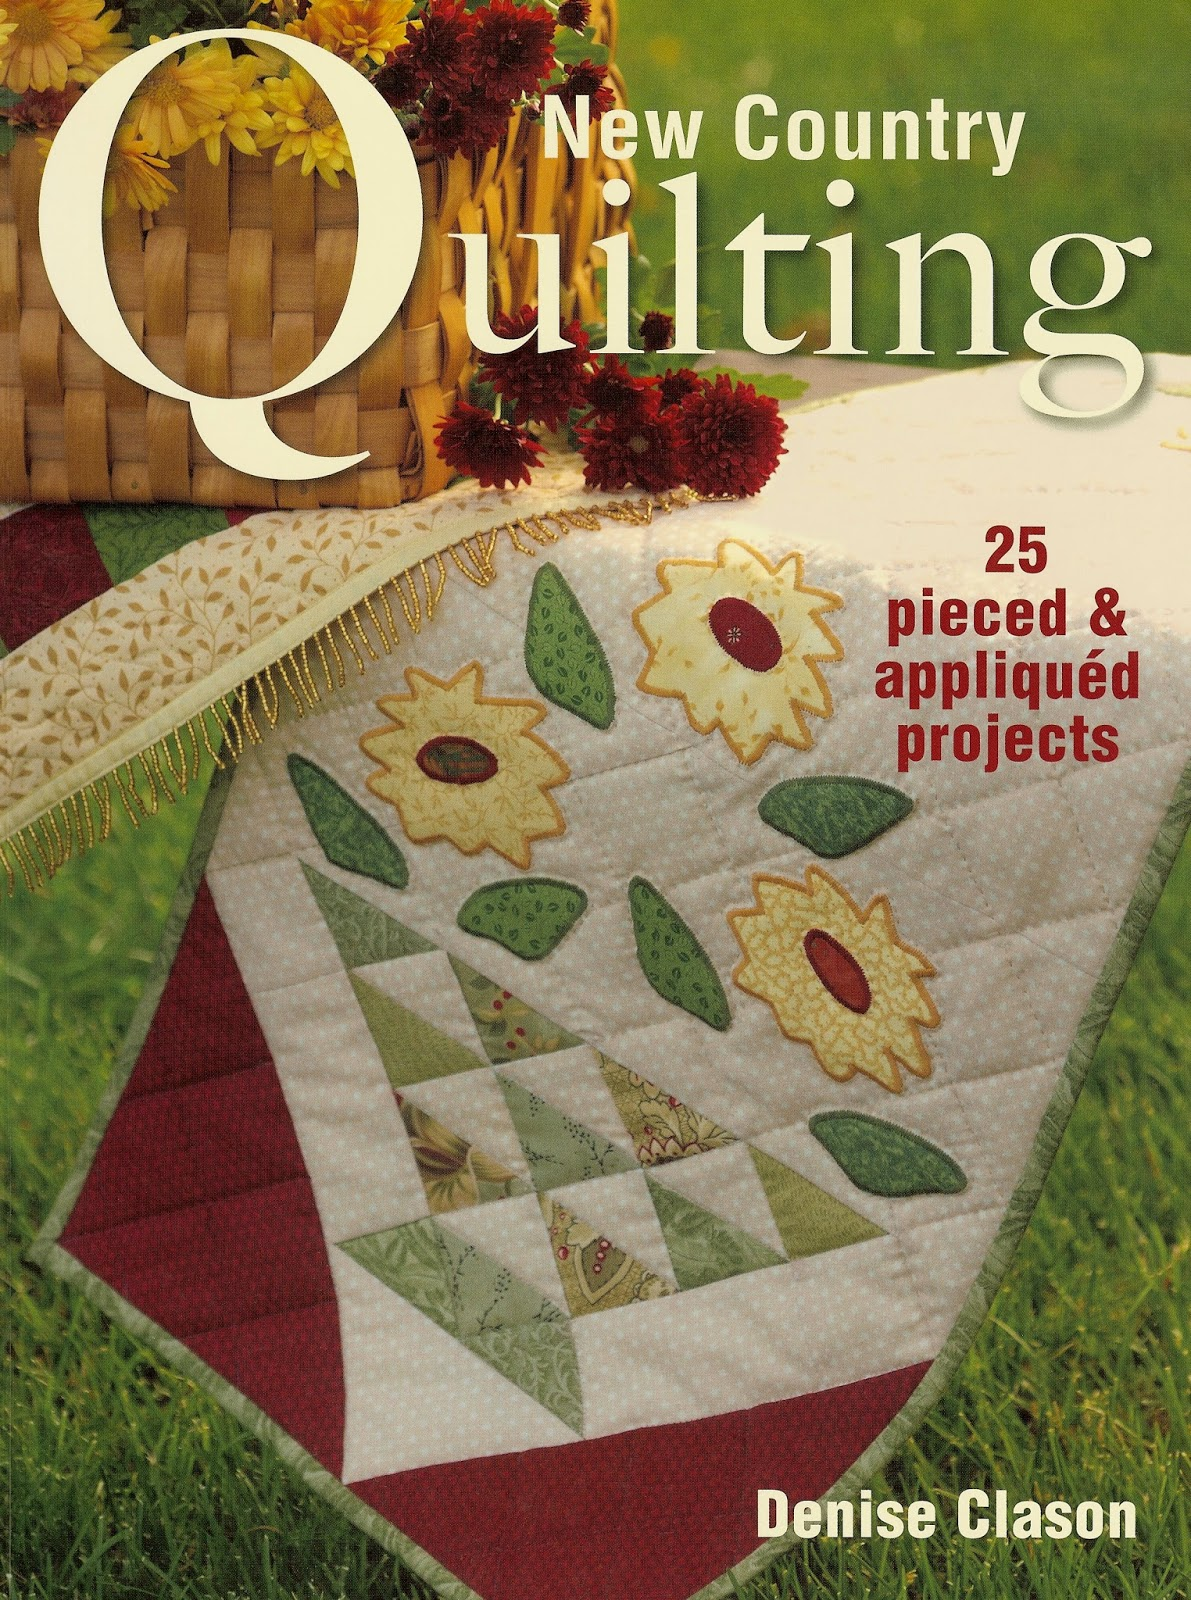 new country quilting with 25 pieced and appliquéd projects